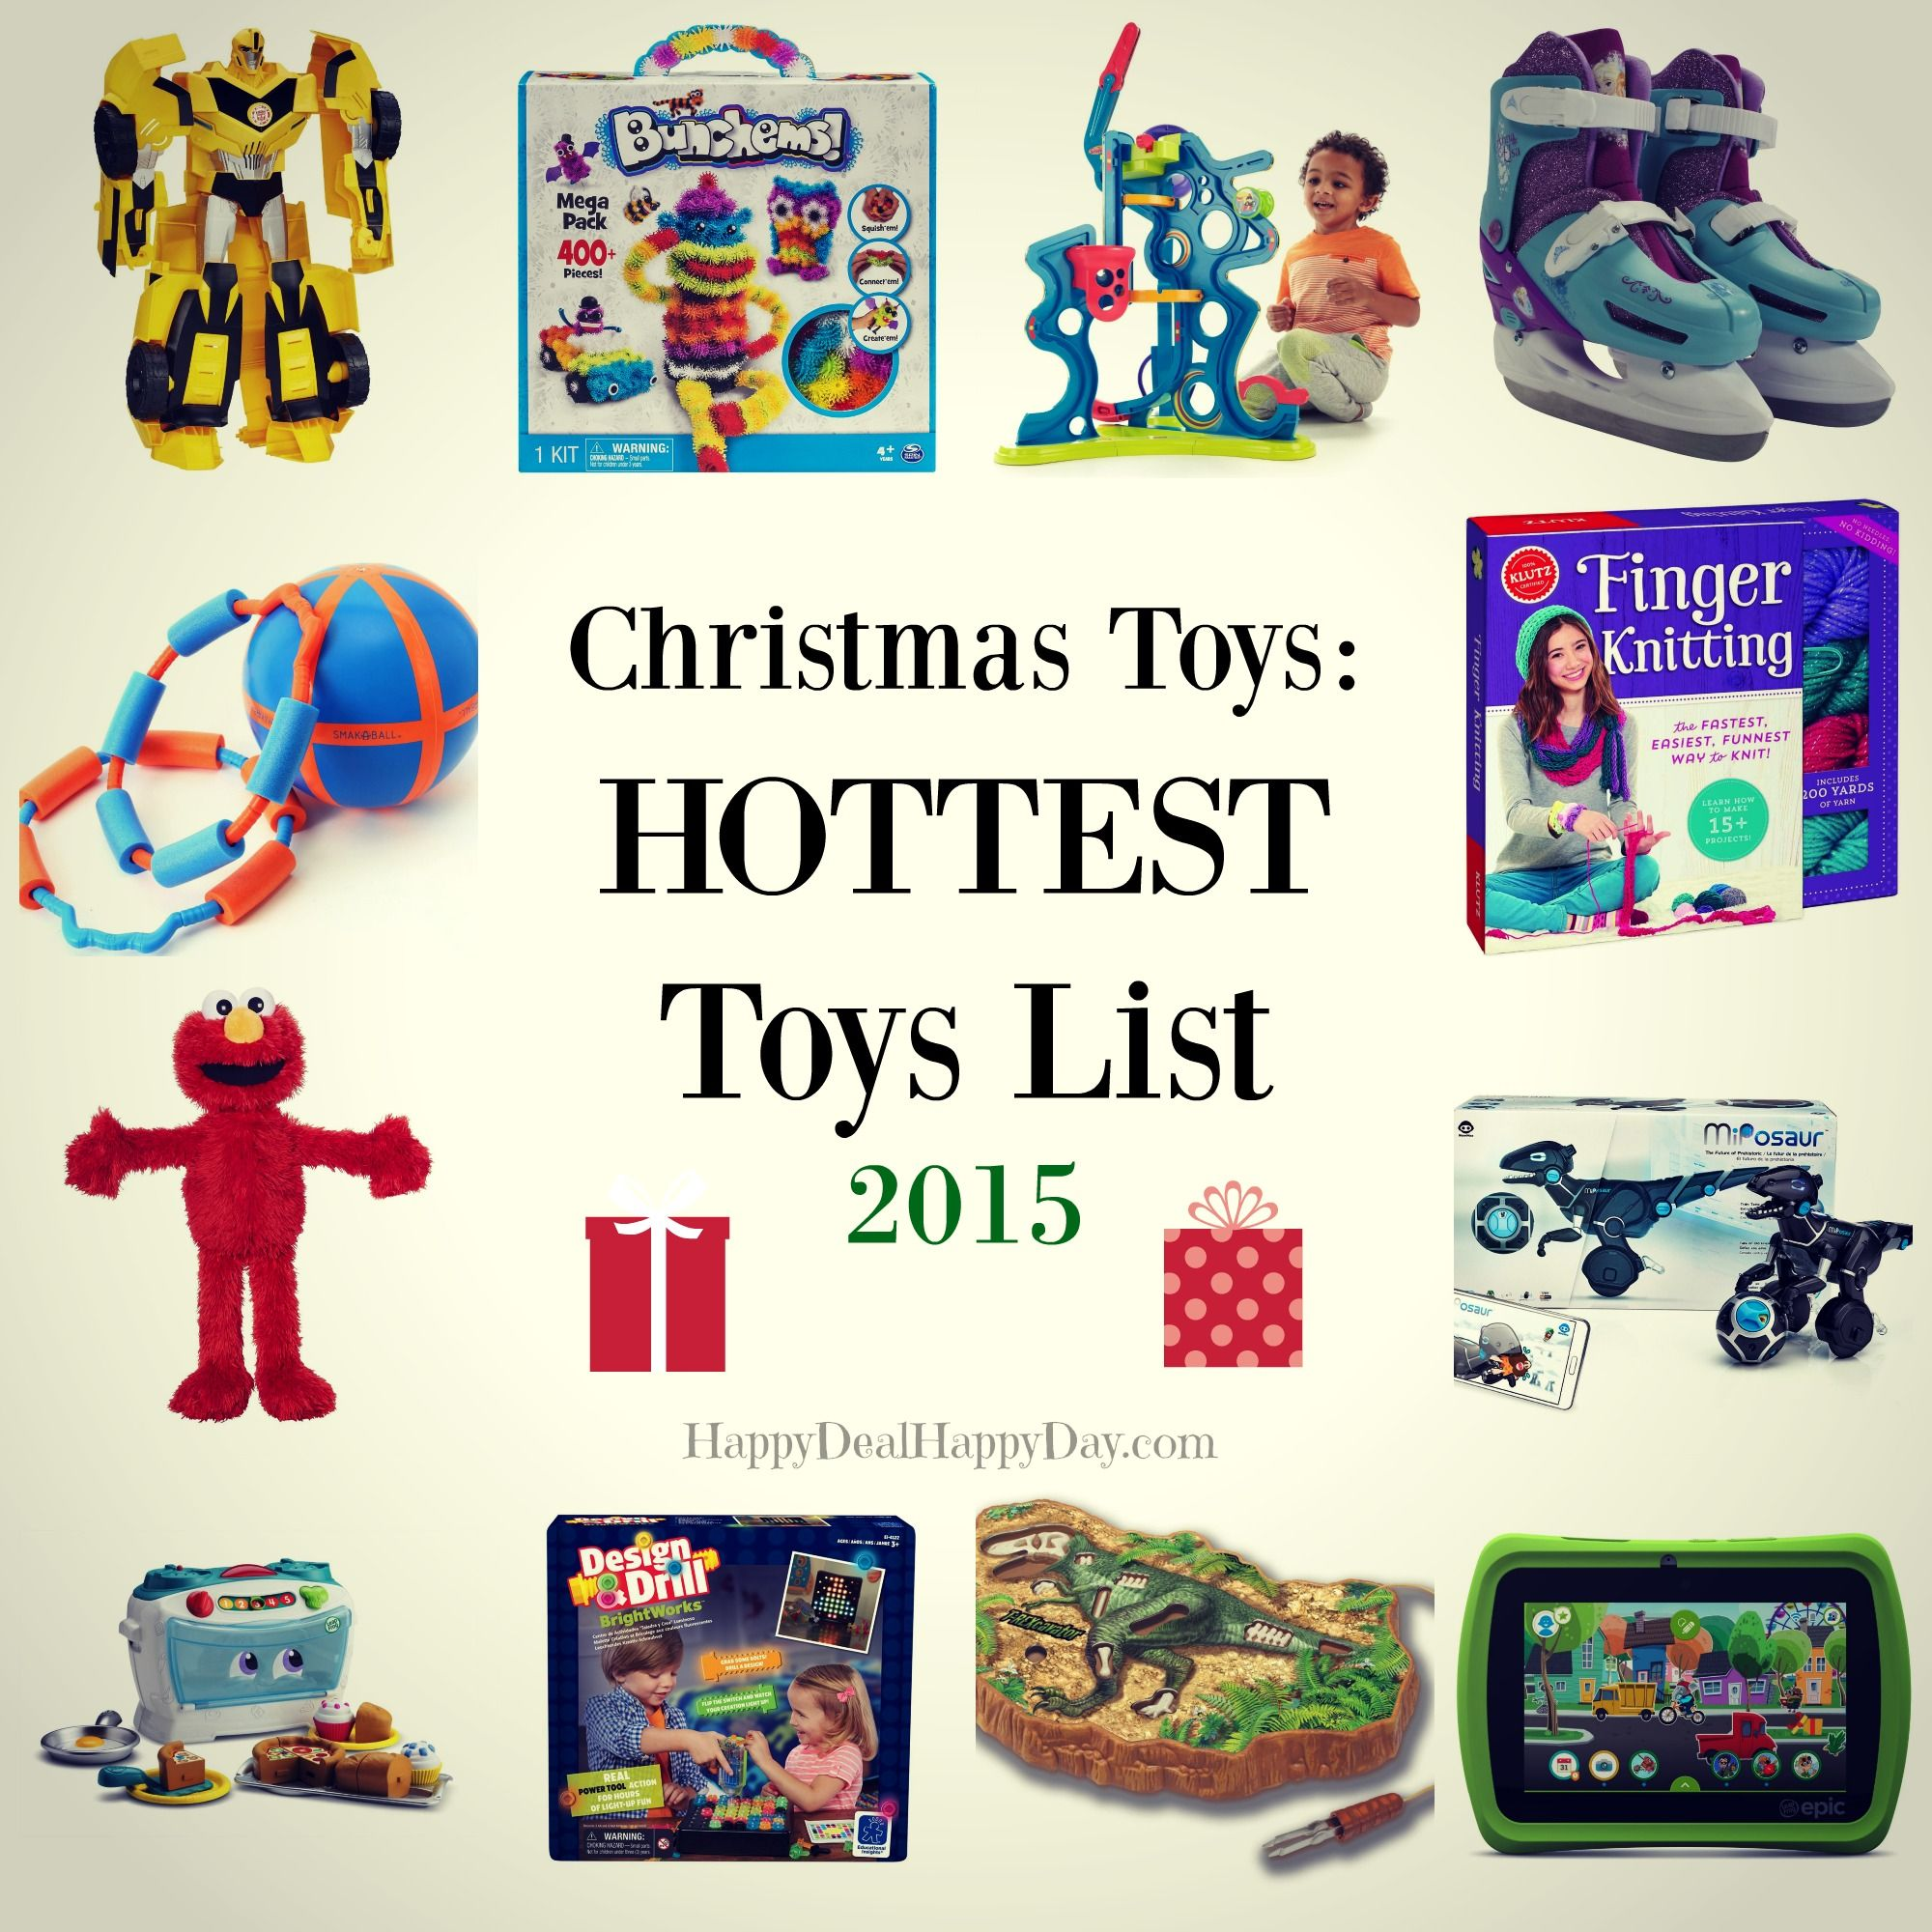 Christmas Toys:  HOTTEST Toys List 2015.  Shop early before some of these sell out before Christmas!